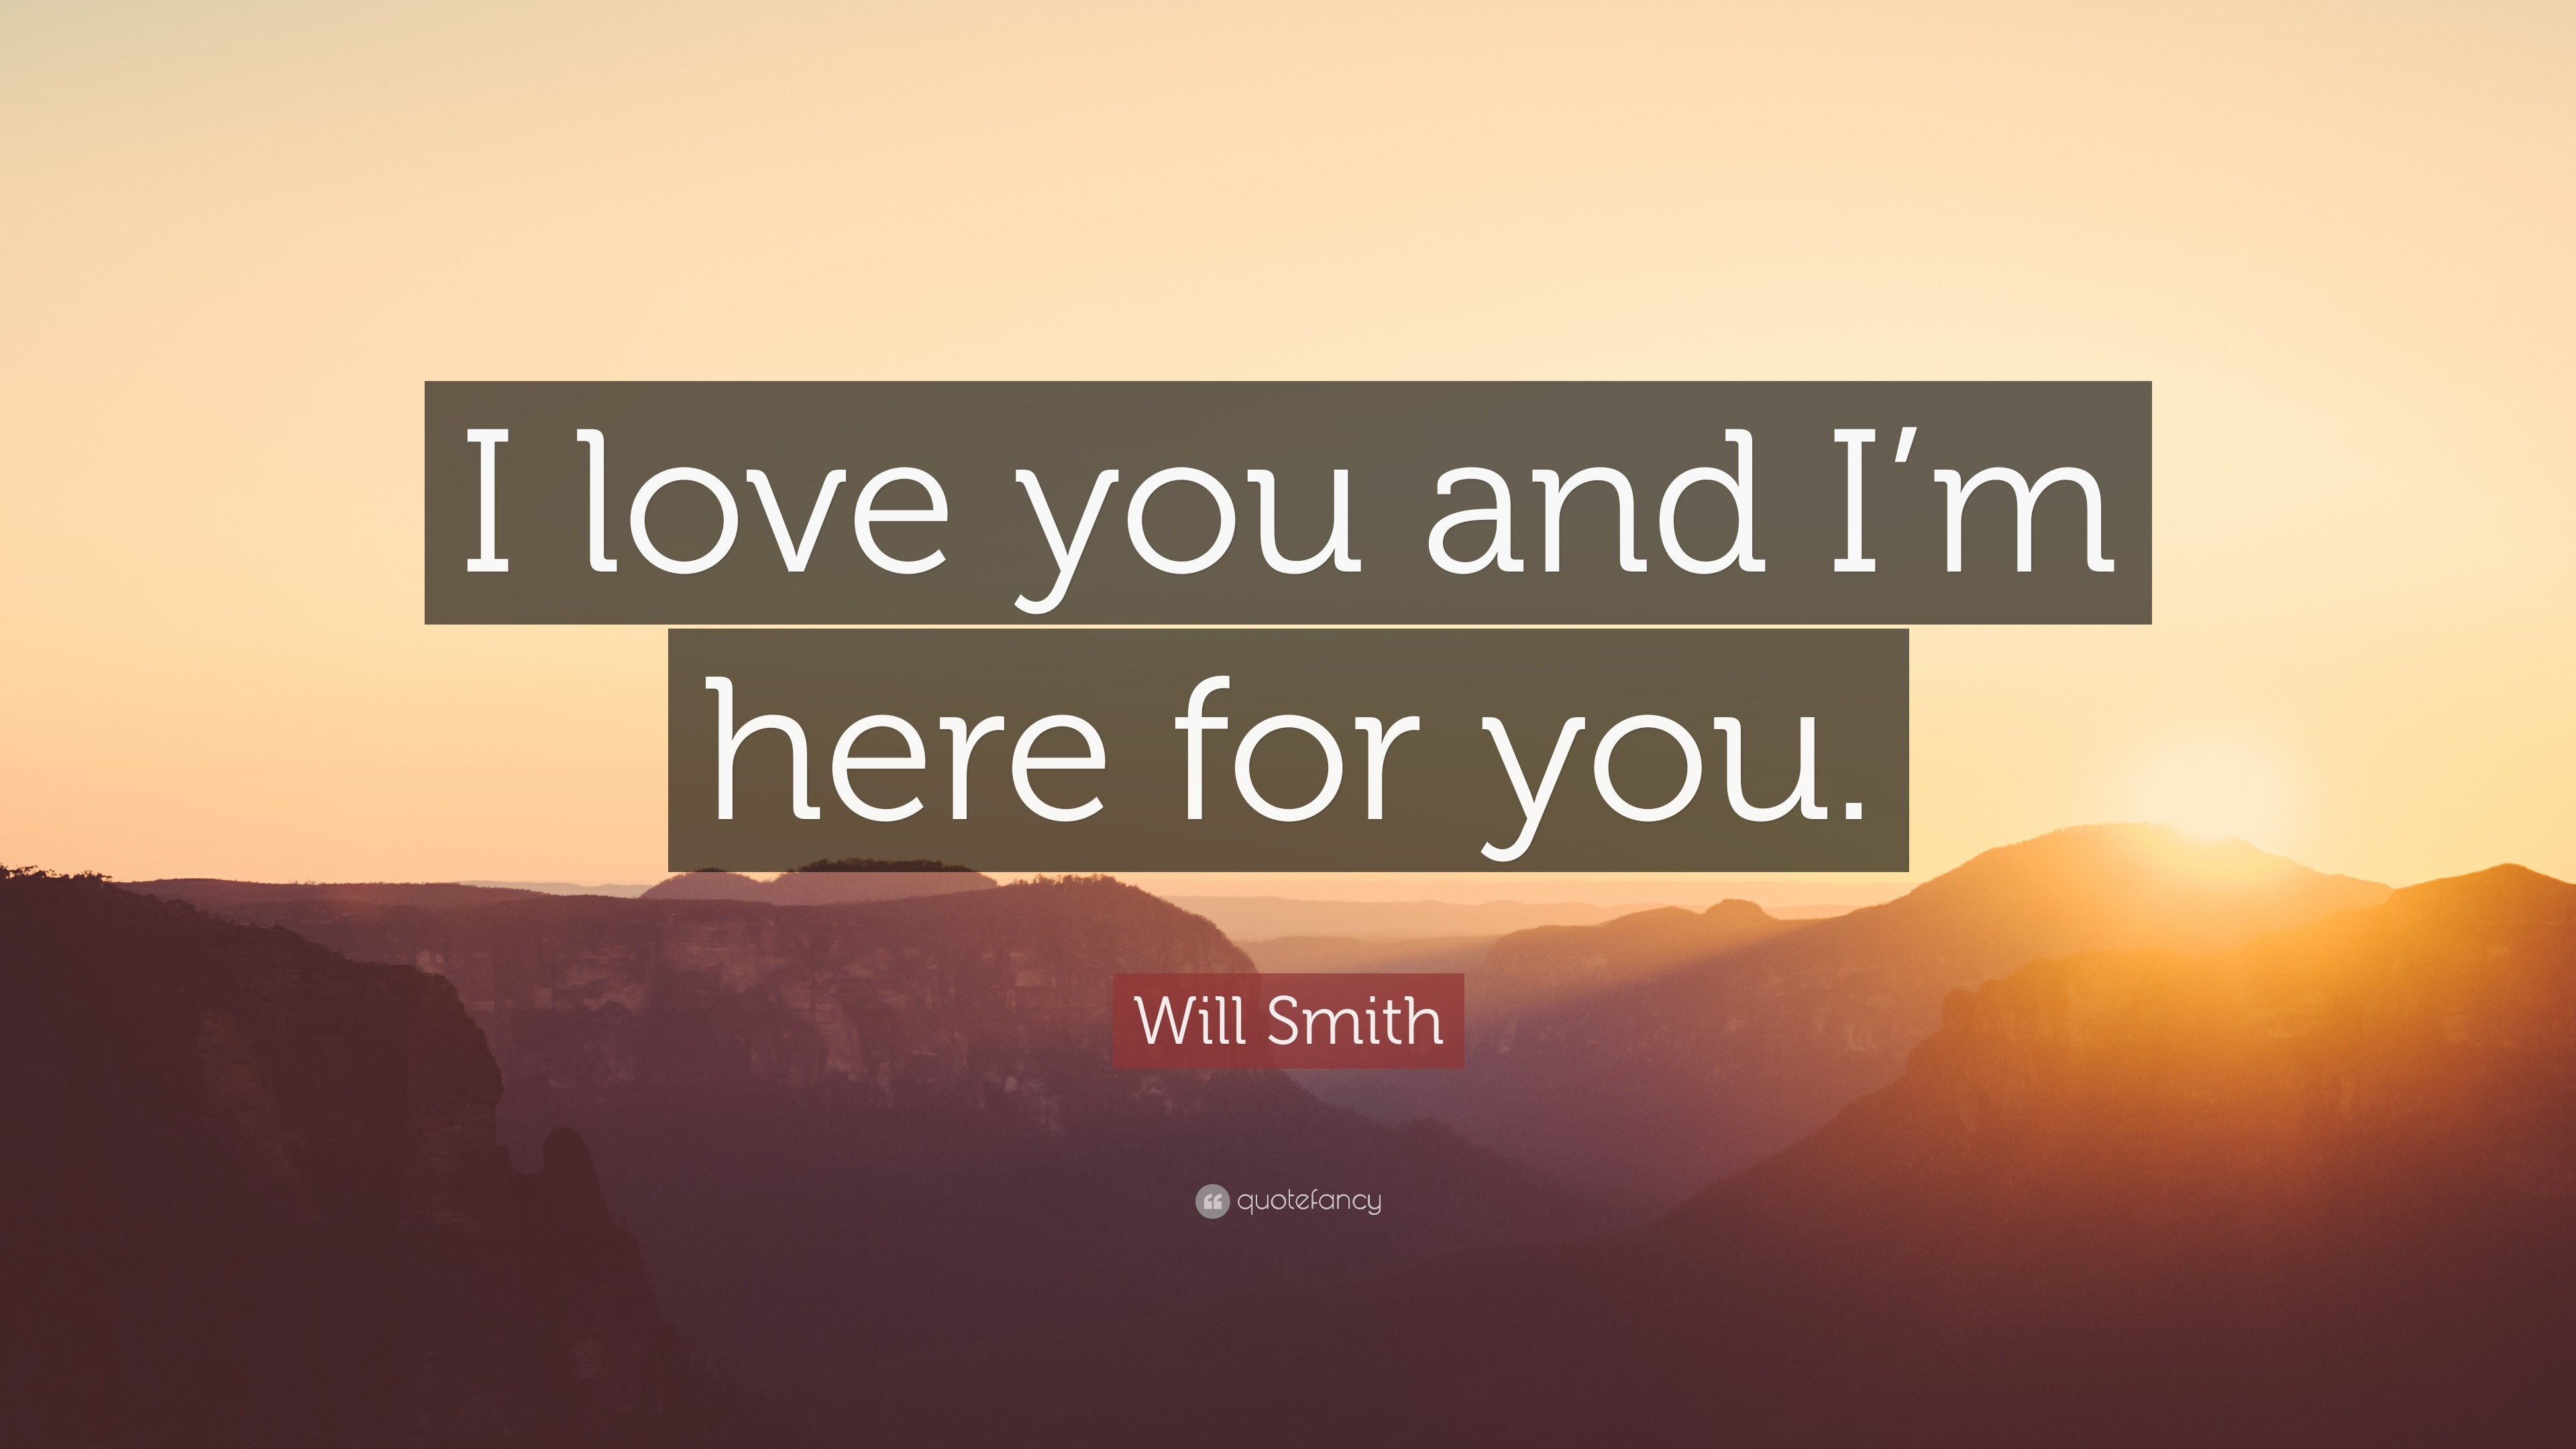 I Love You Wallpaper And Quotes : I Love You Wallpapers with Quotes (56+ images)